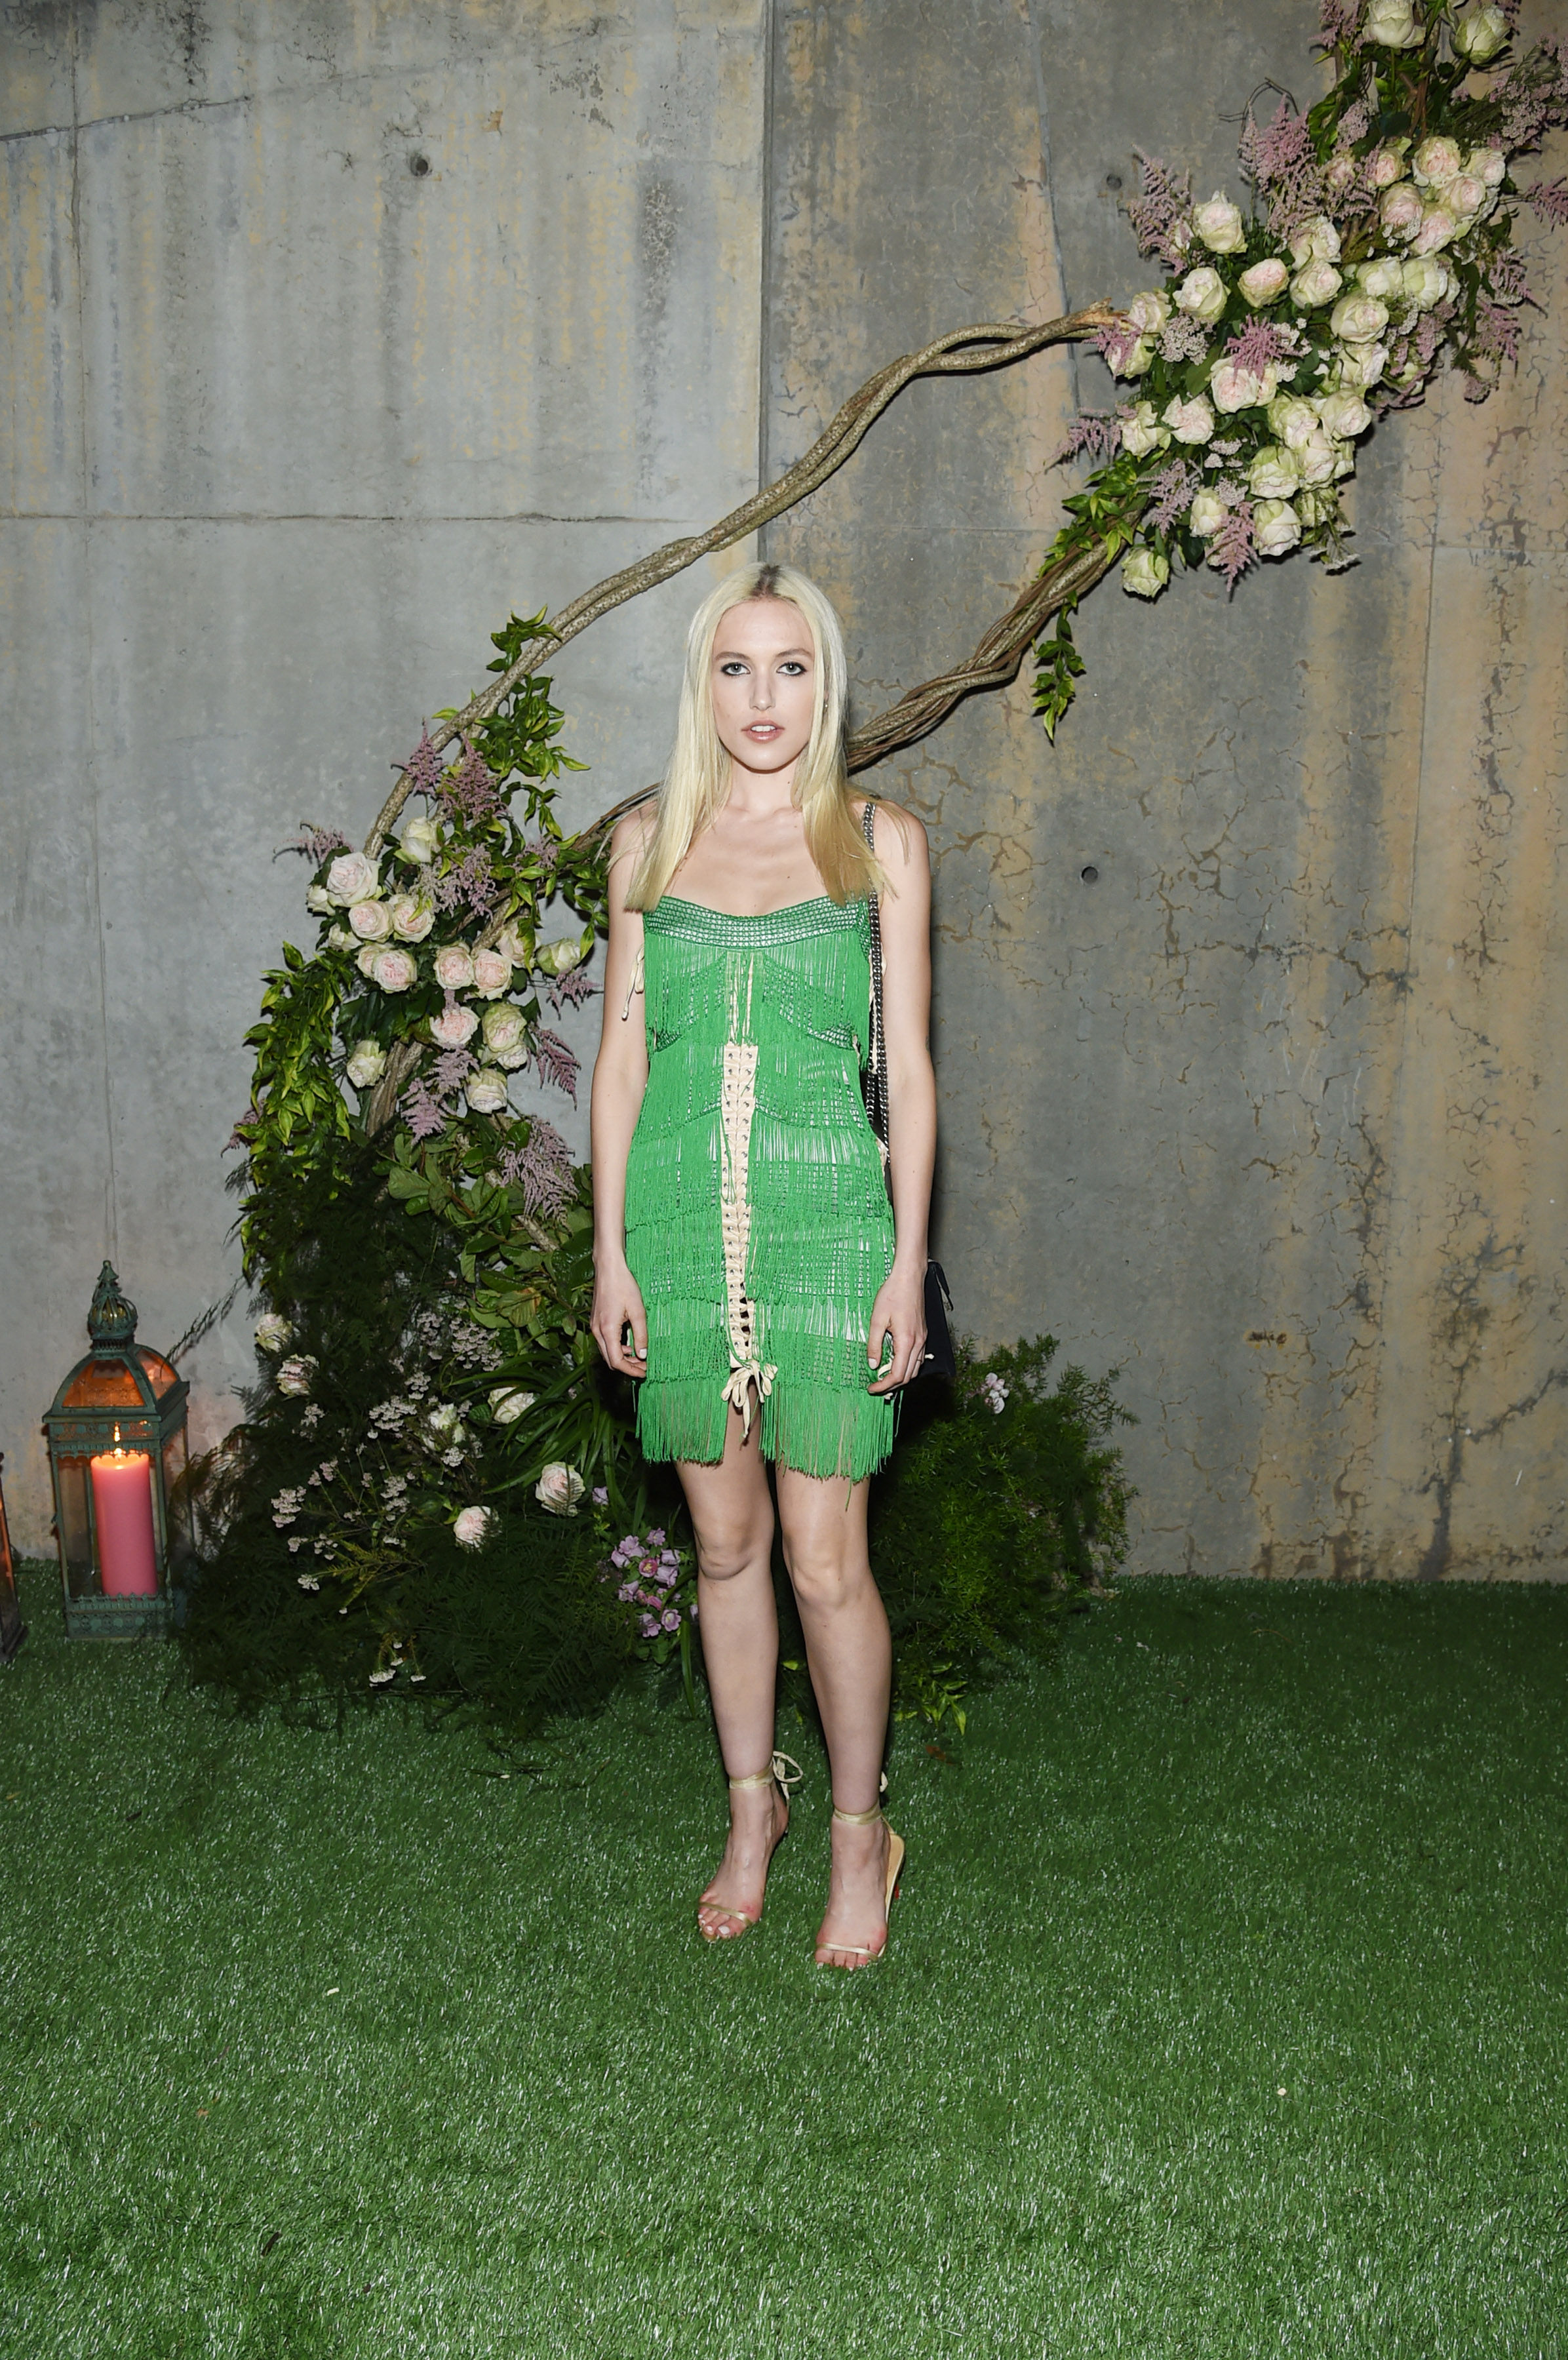 NEW YORK, NY - MAY 02: Carlotta Kohl attends the Gucci Bloom Fragrance Launch at MoMA PS.1 on May 2, 2017 in New York City. (Photo by Jamie McCarthy/Getty Images for Gucci)